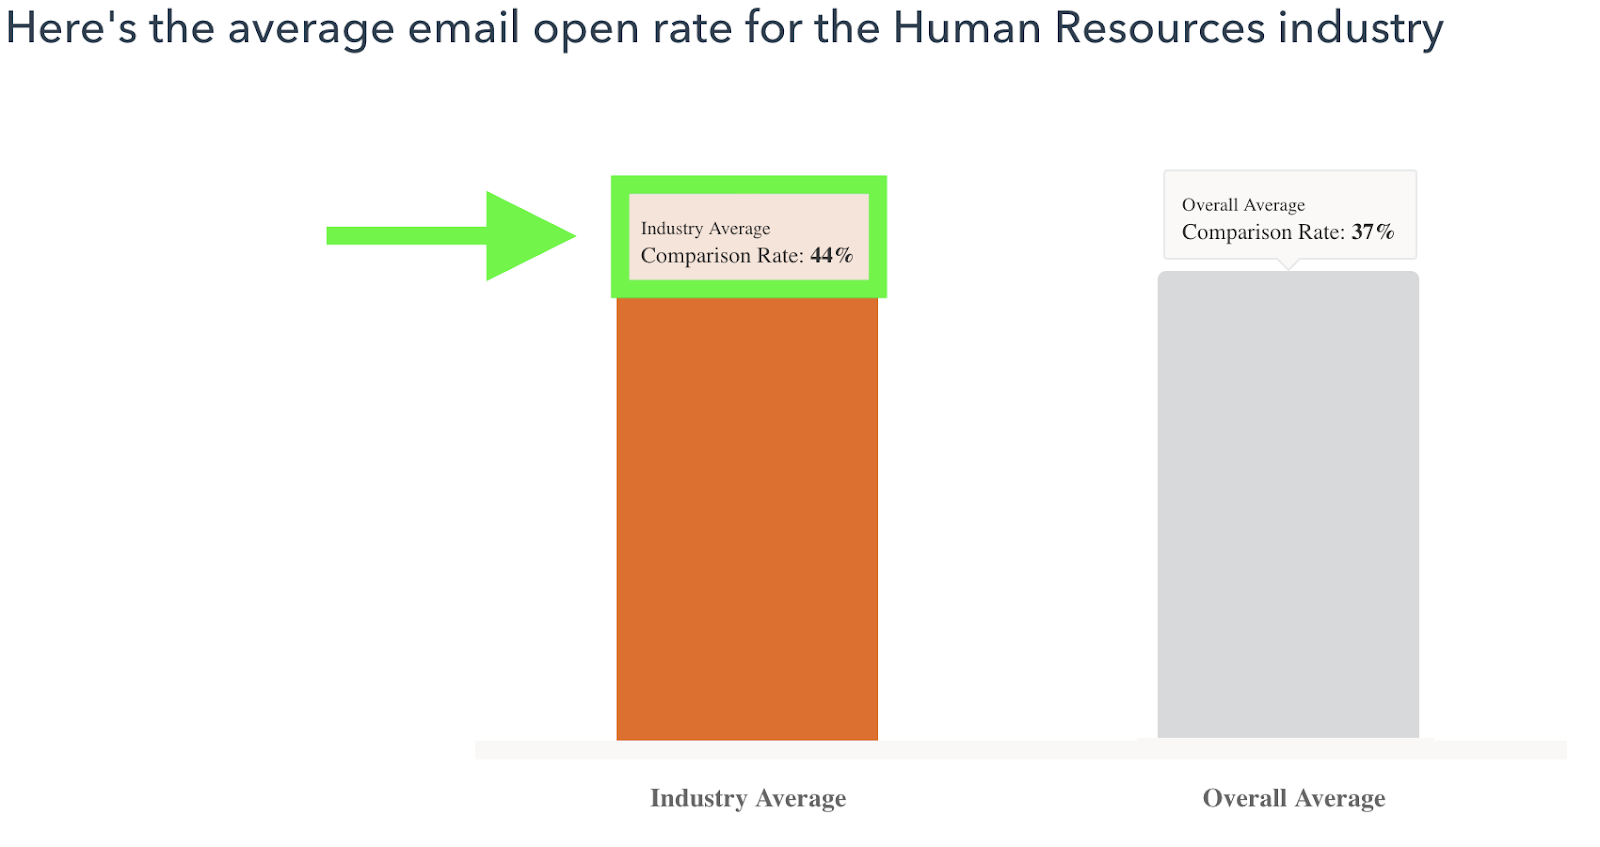 candidates open 44% of emails